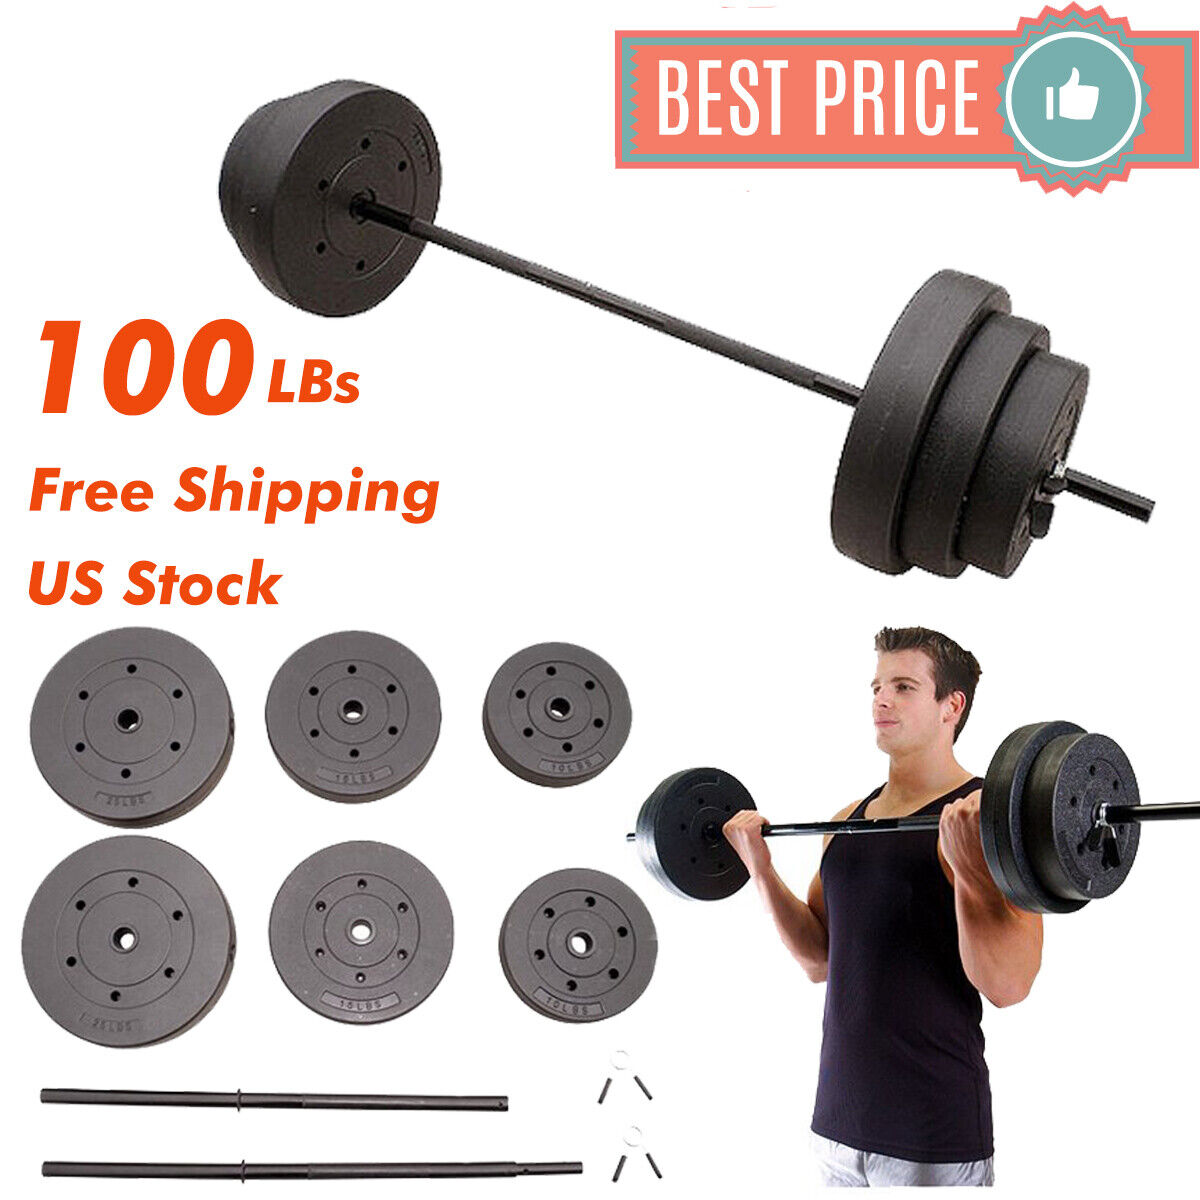 100 LBs Pound Lifting WEIGHT SET Plates With Bar Home  Gym Standard Vinyl Workout  take up to 70% off